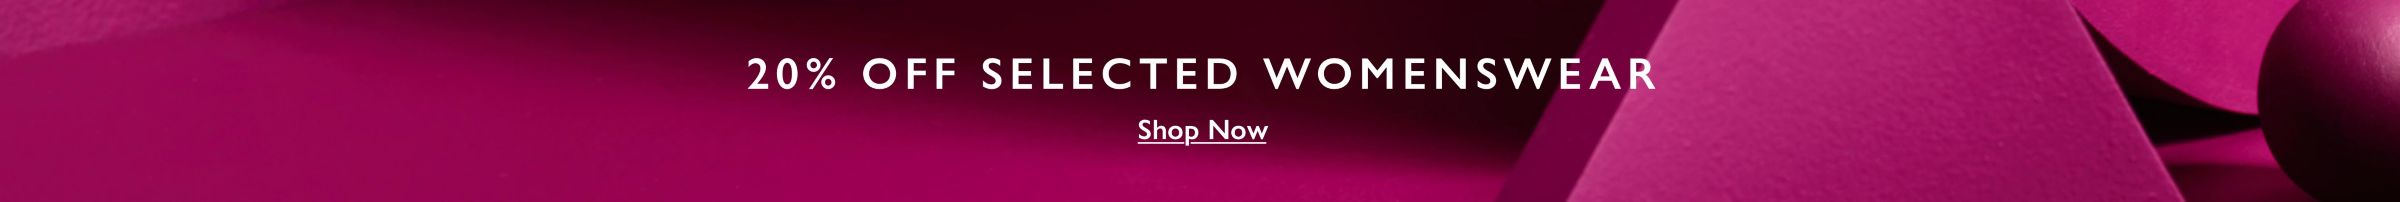 season offers womenswear